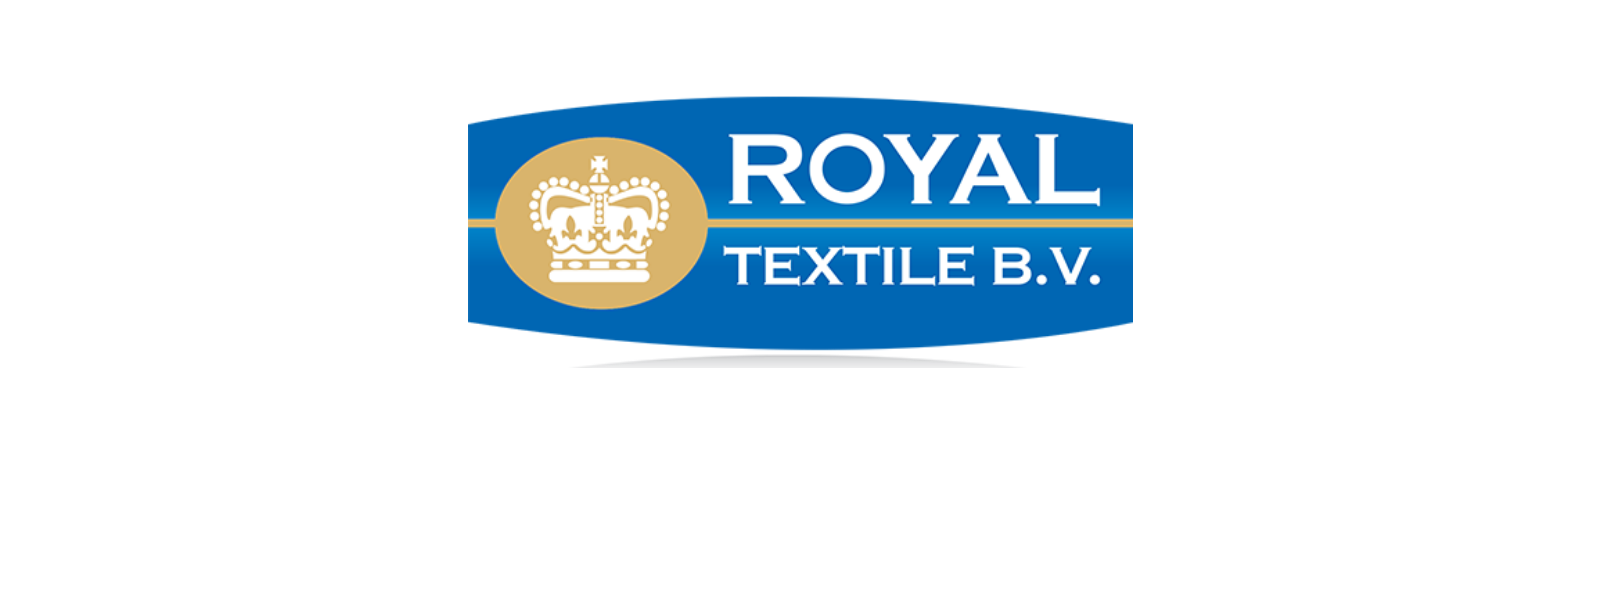 E-commerce voor Royal Textile